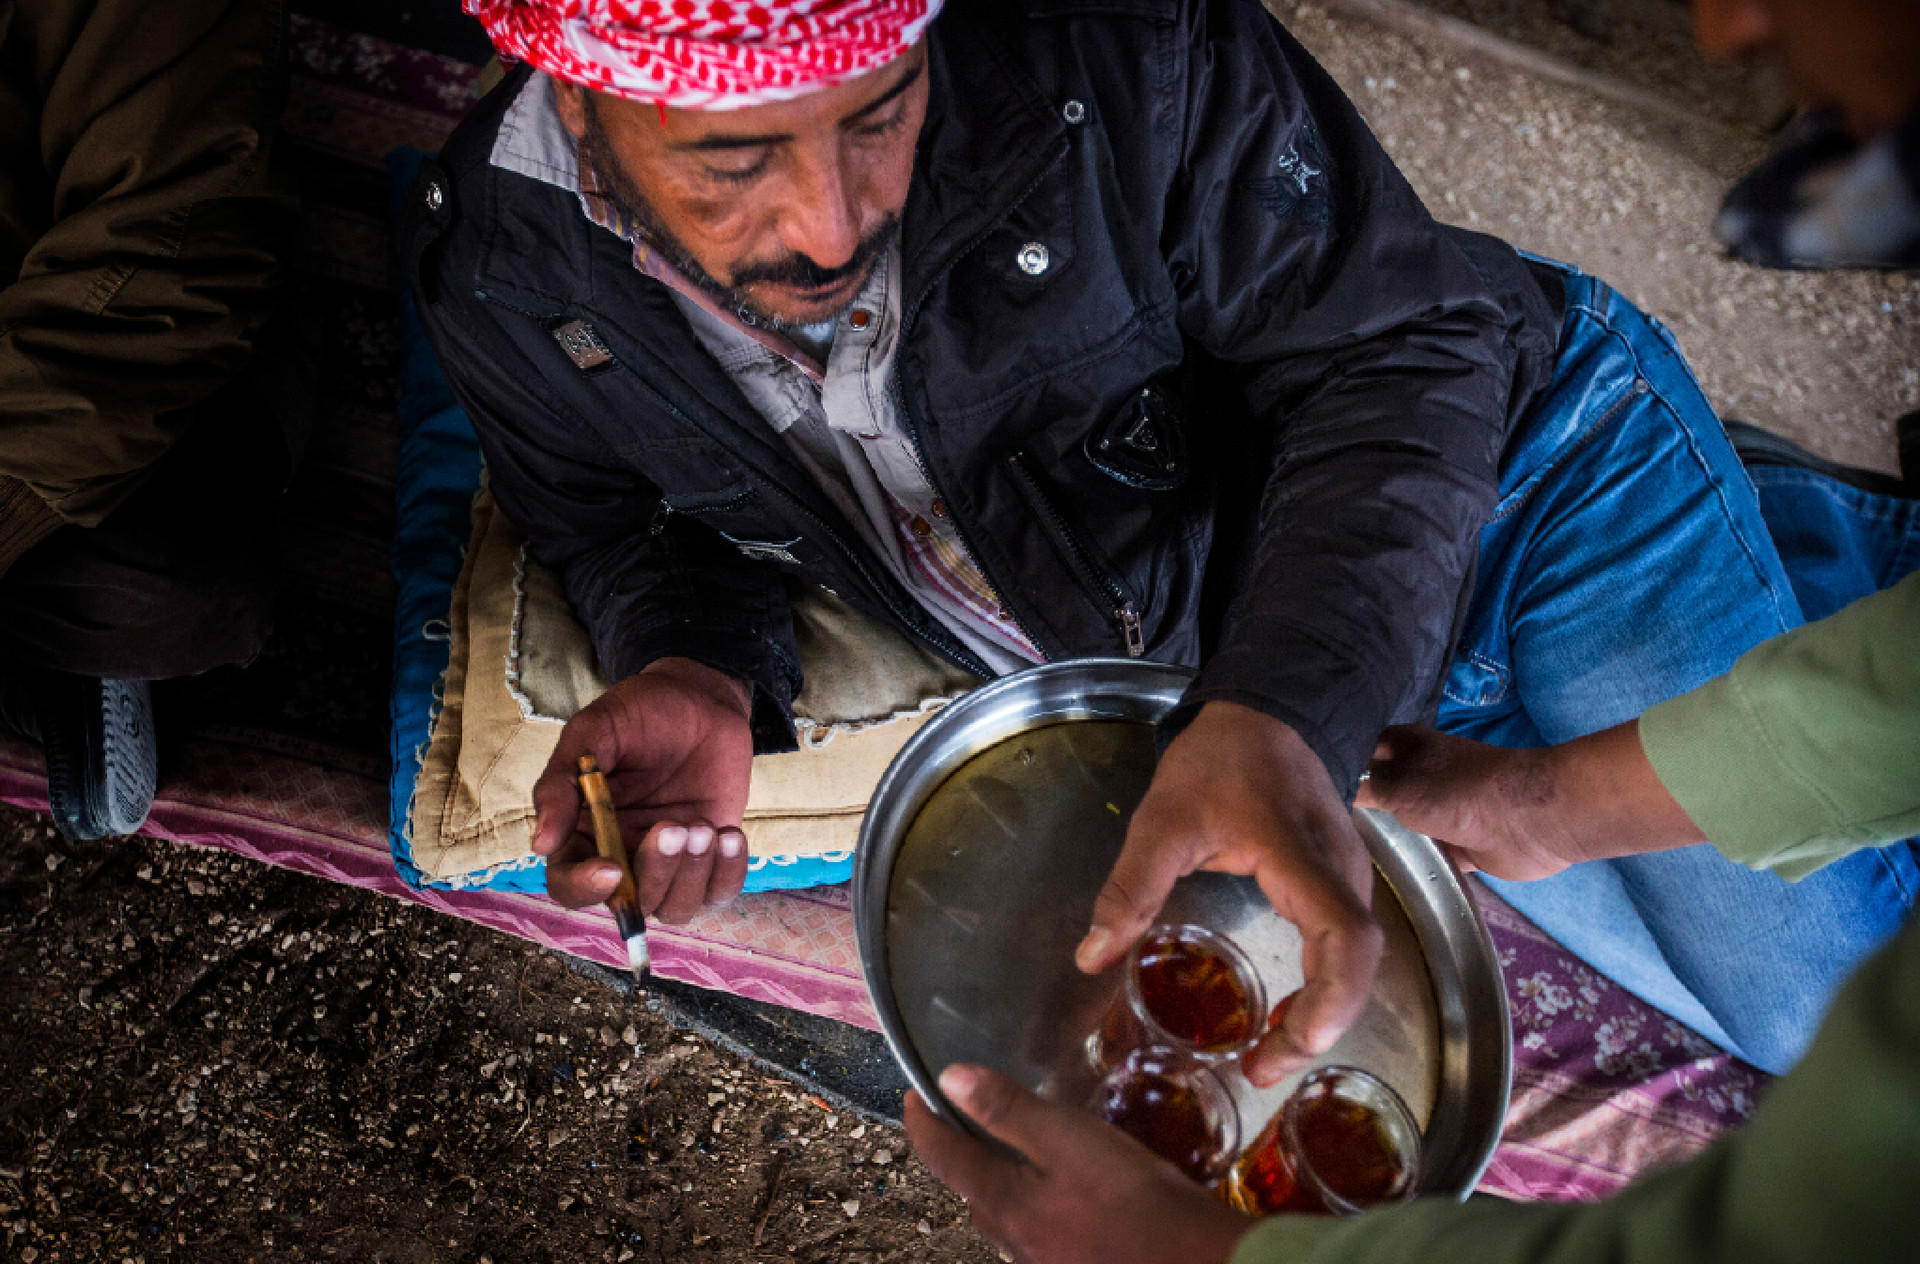 The Jahalin Bedouin live in an impoverished region of the West Bank in the desert. The few jobs available to them are often at Jewish settlements doing menial work.